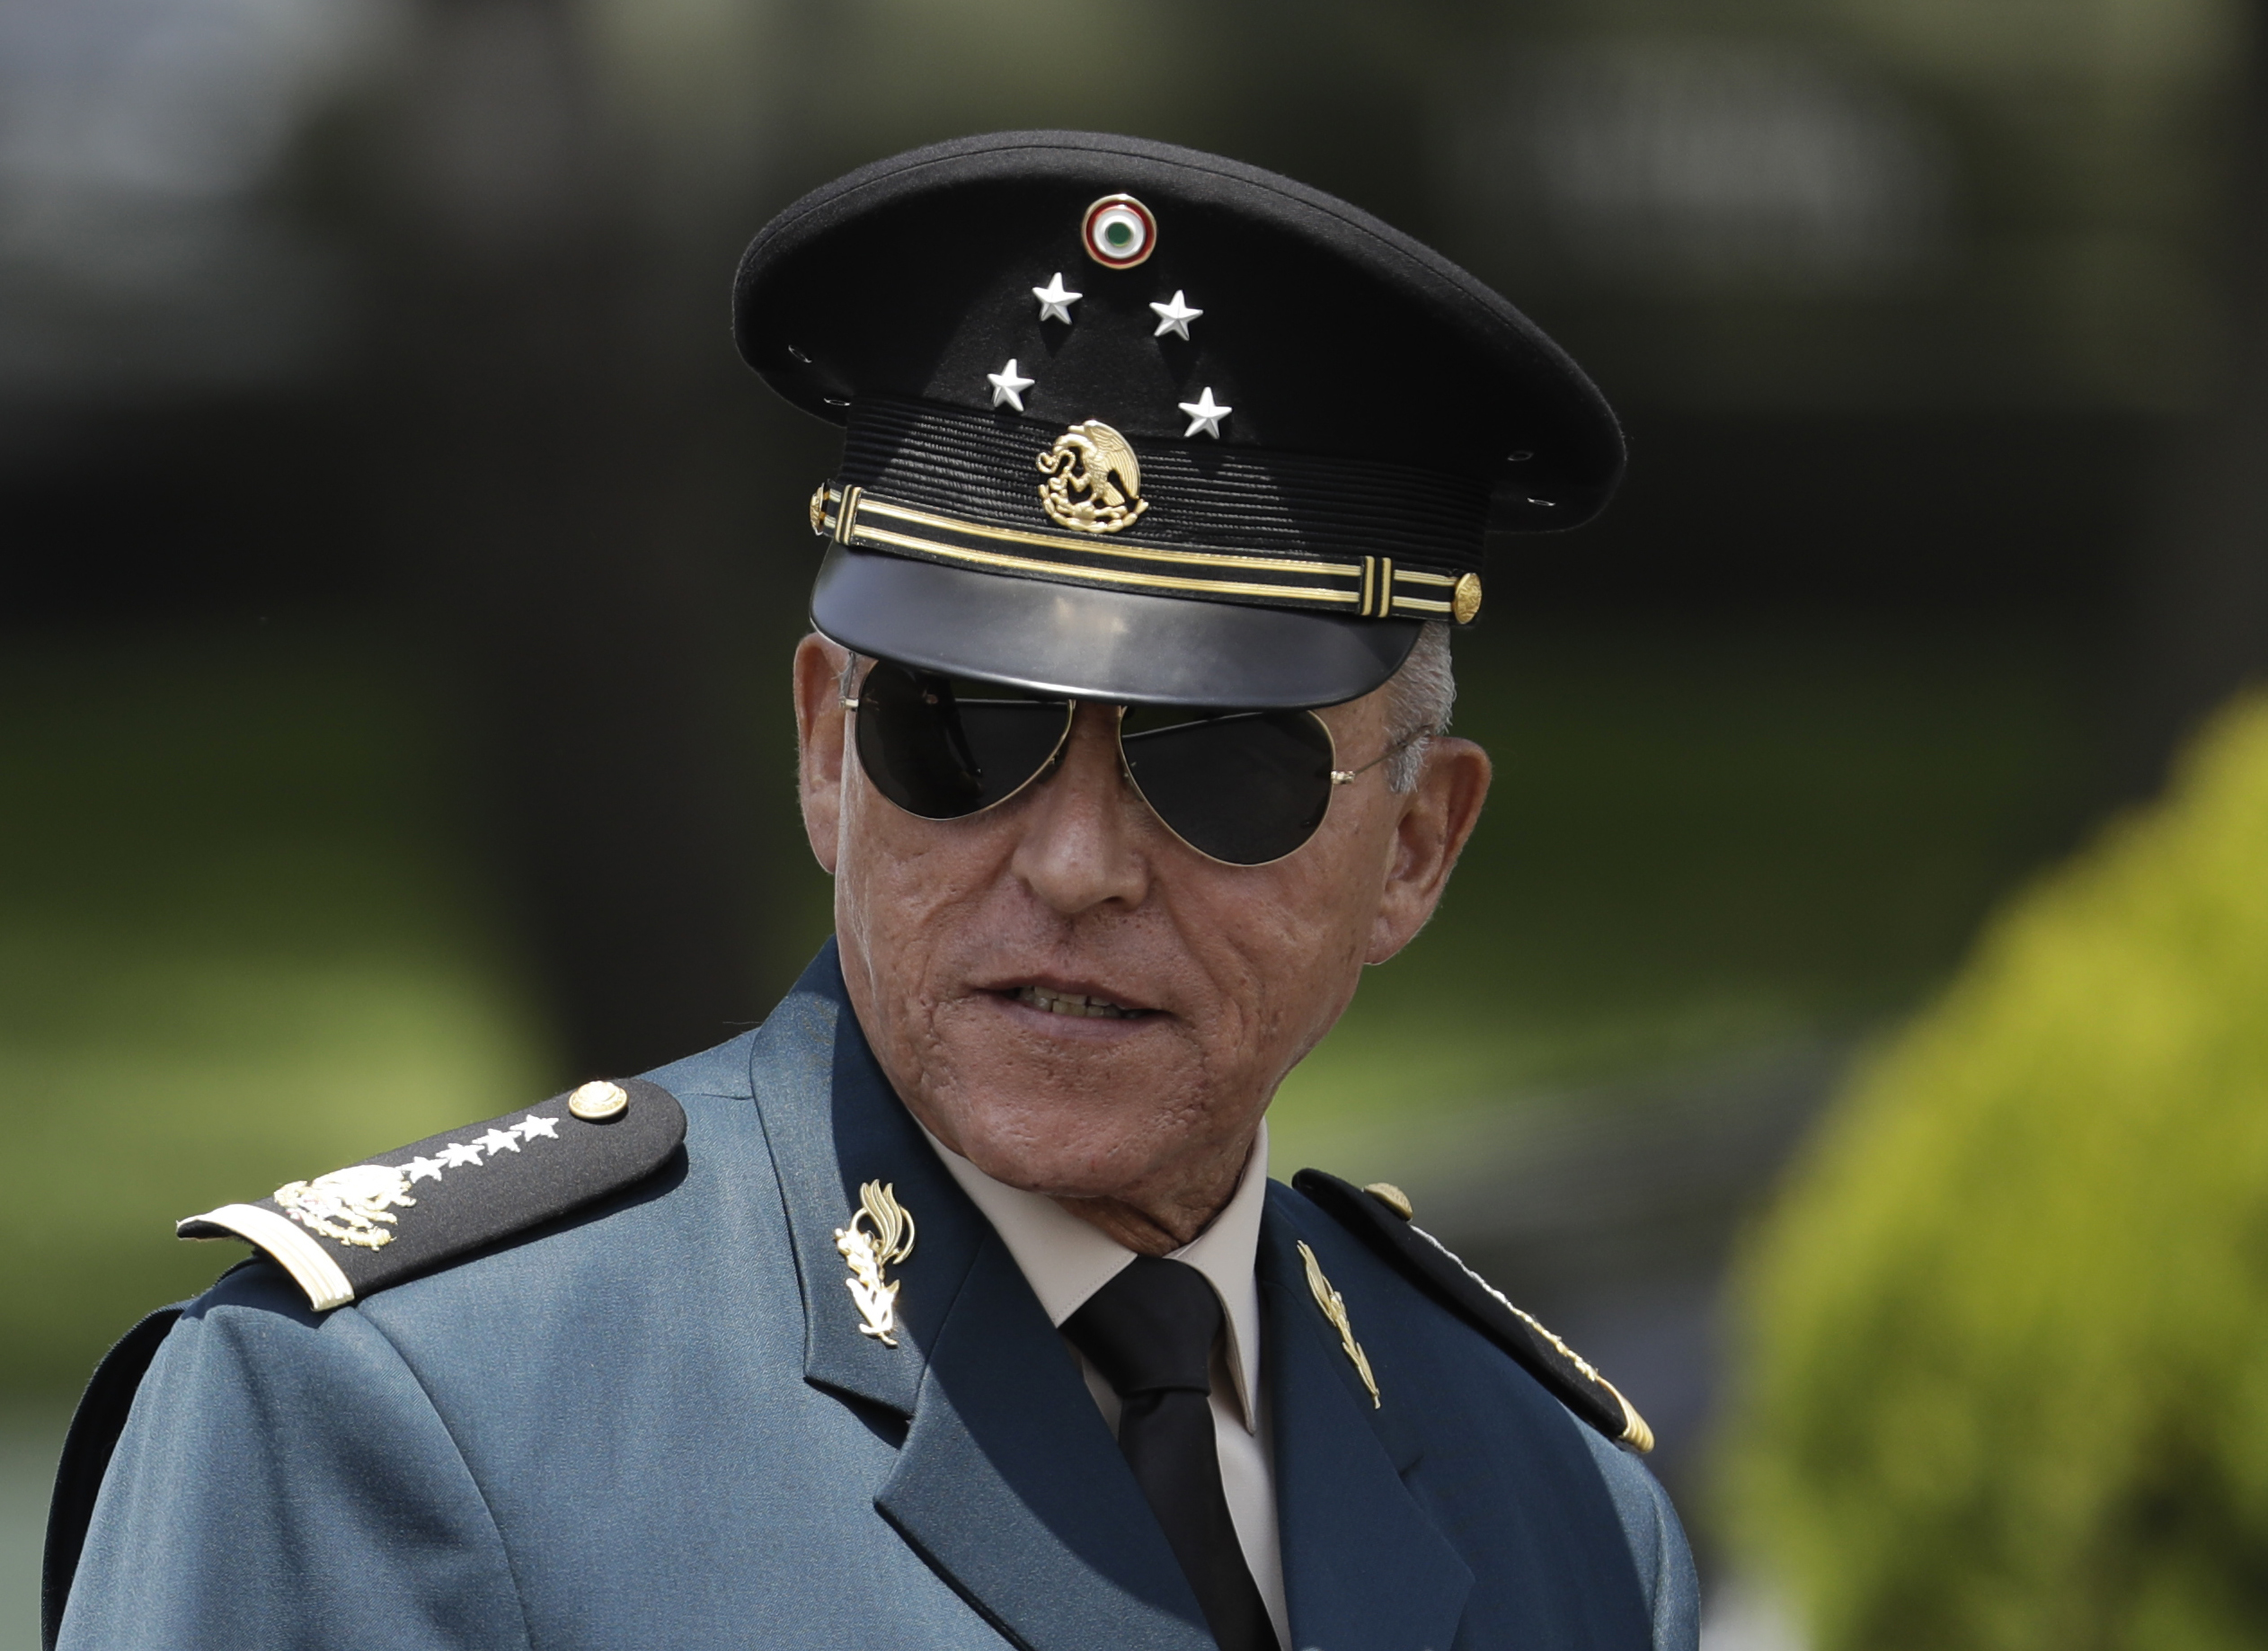 Mexico has said it would drop criminal charges against former defence minister Salvador Cienfuegos